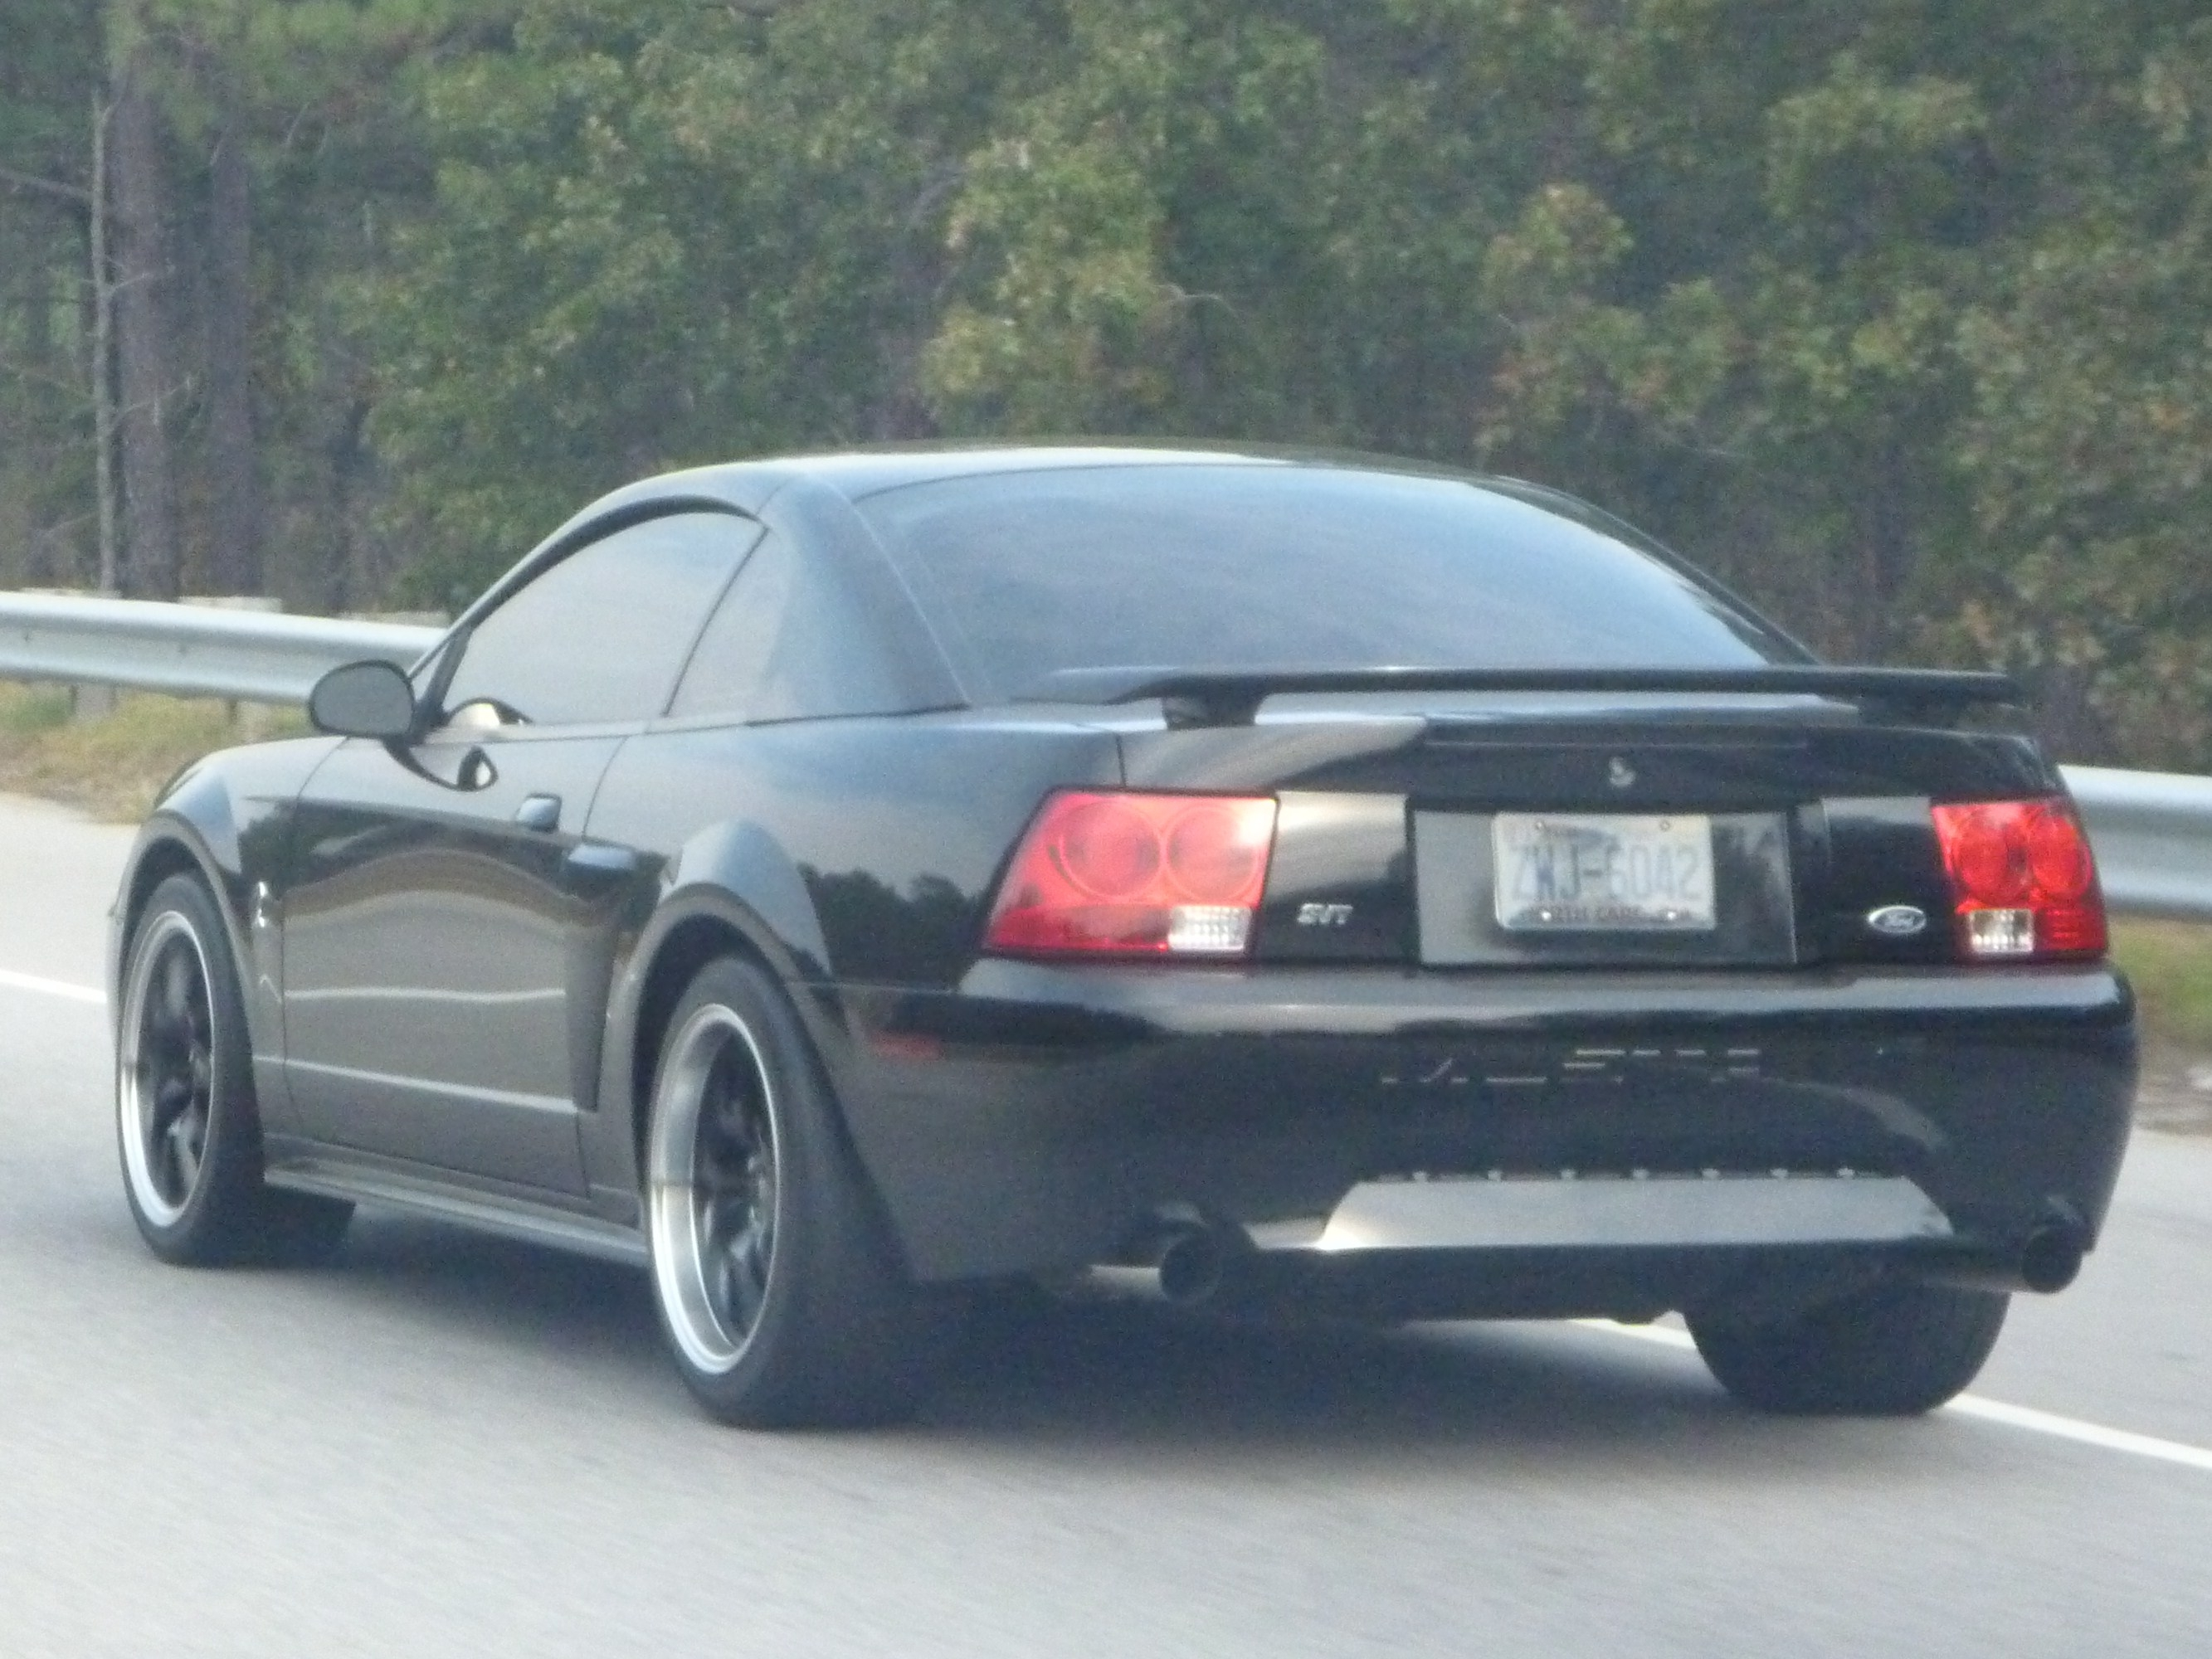 sxy_sgt 2003 Ford Mustang